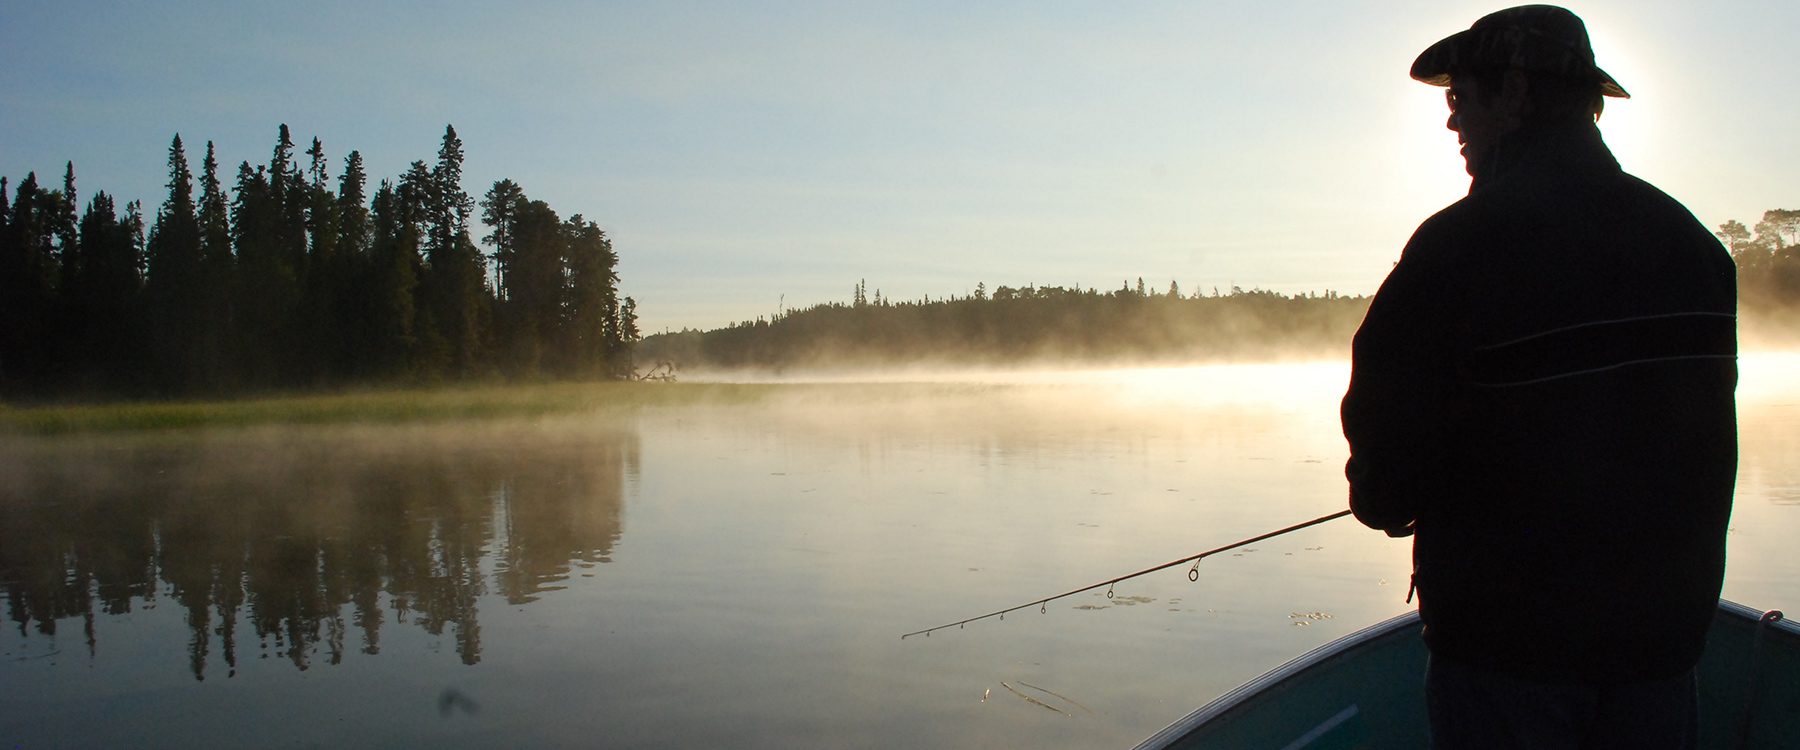 Guest Fishing on Lake in Morning Mist